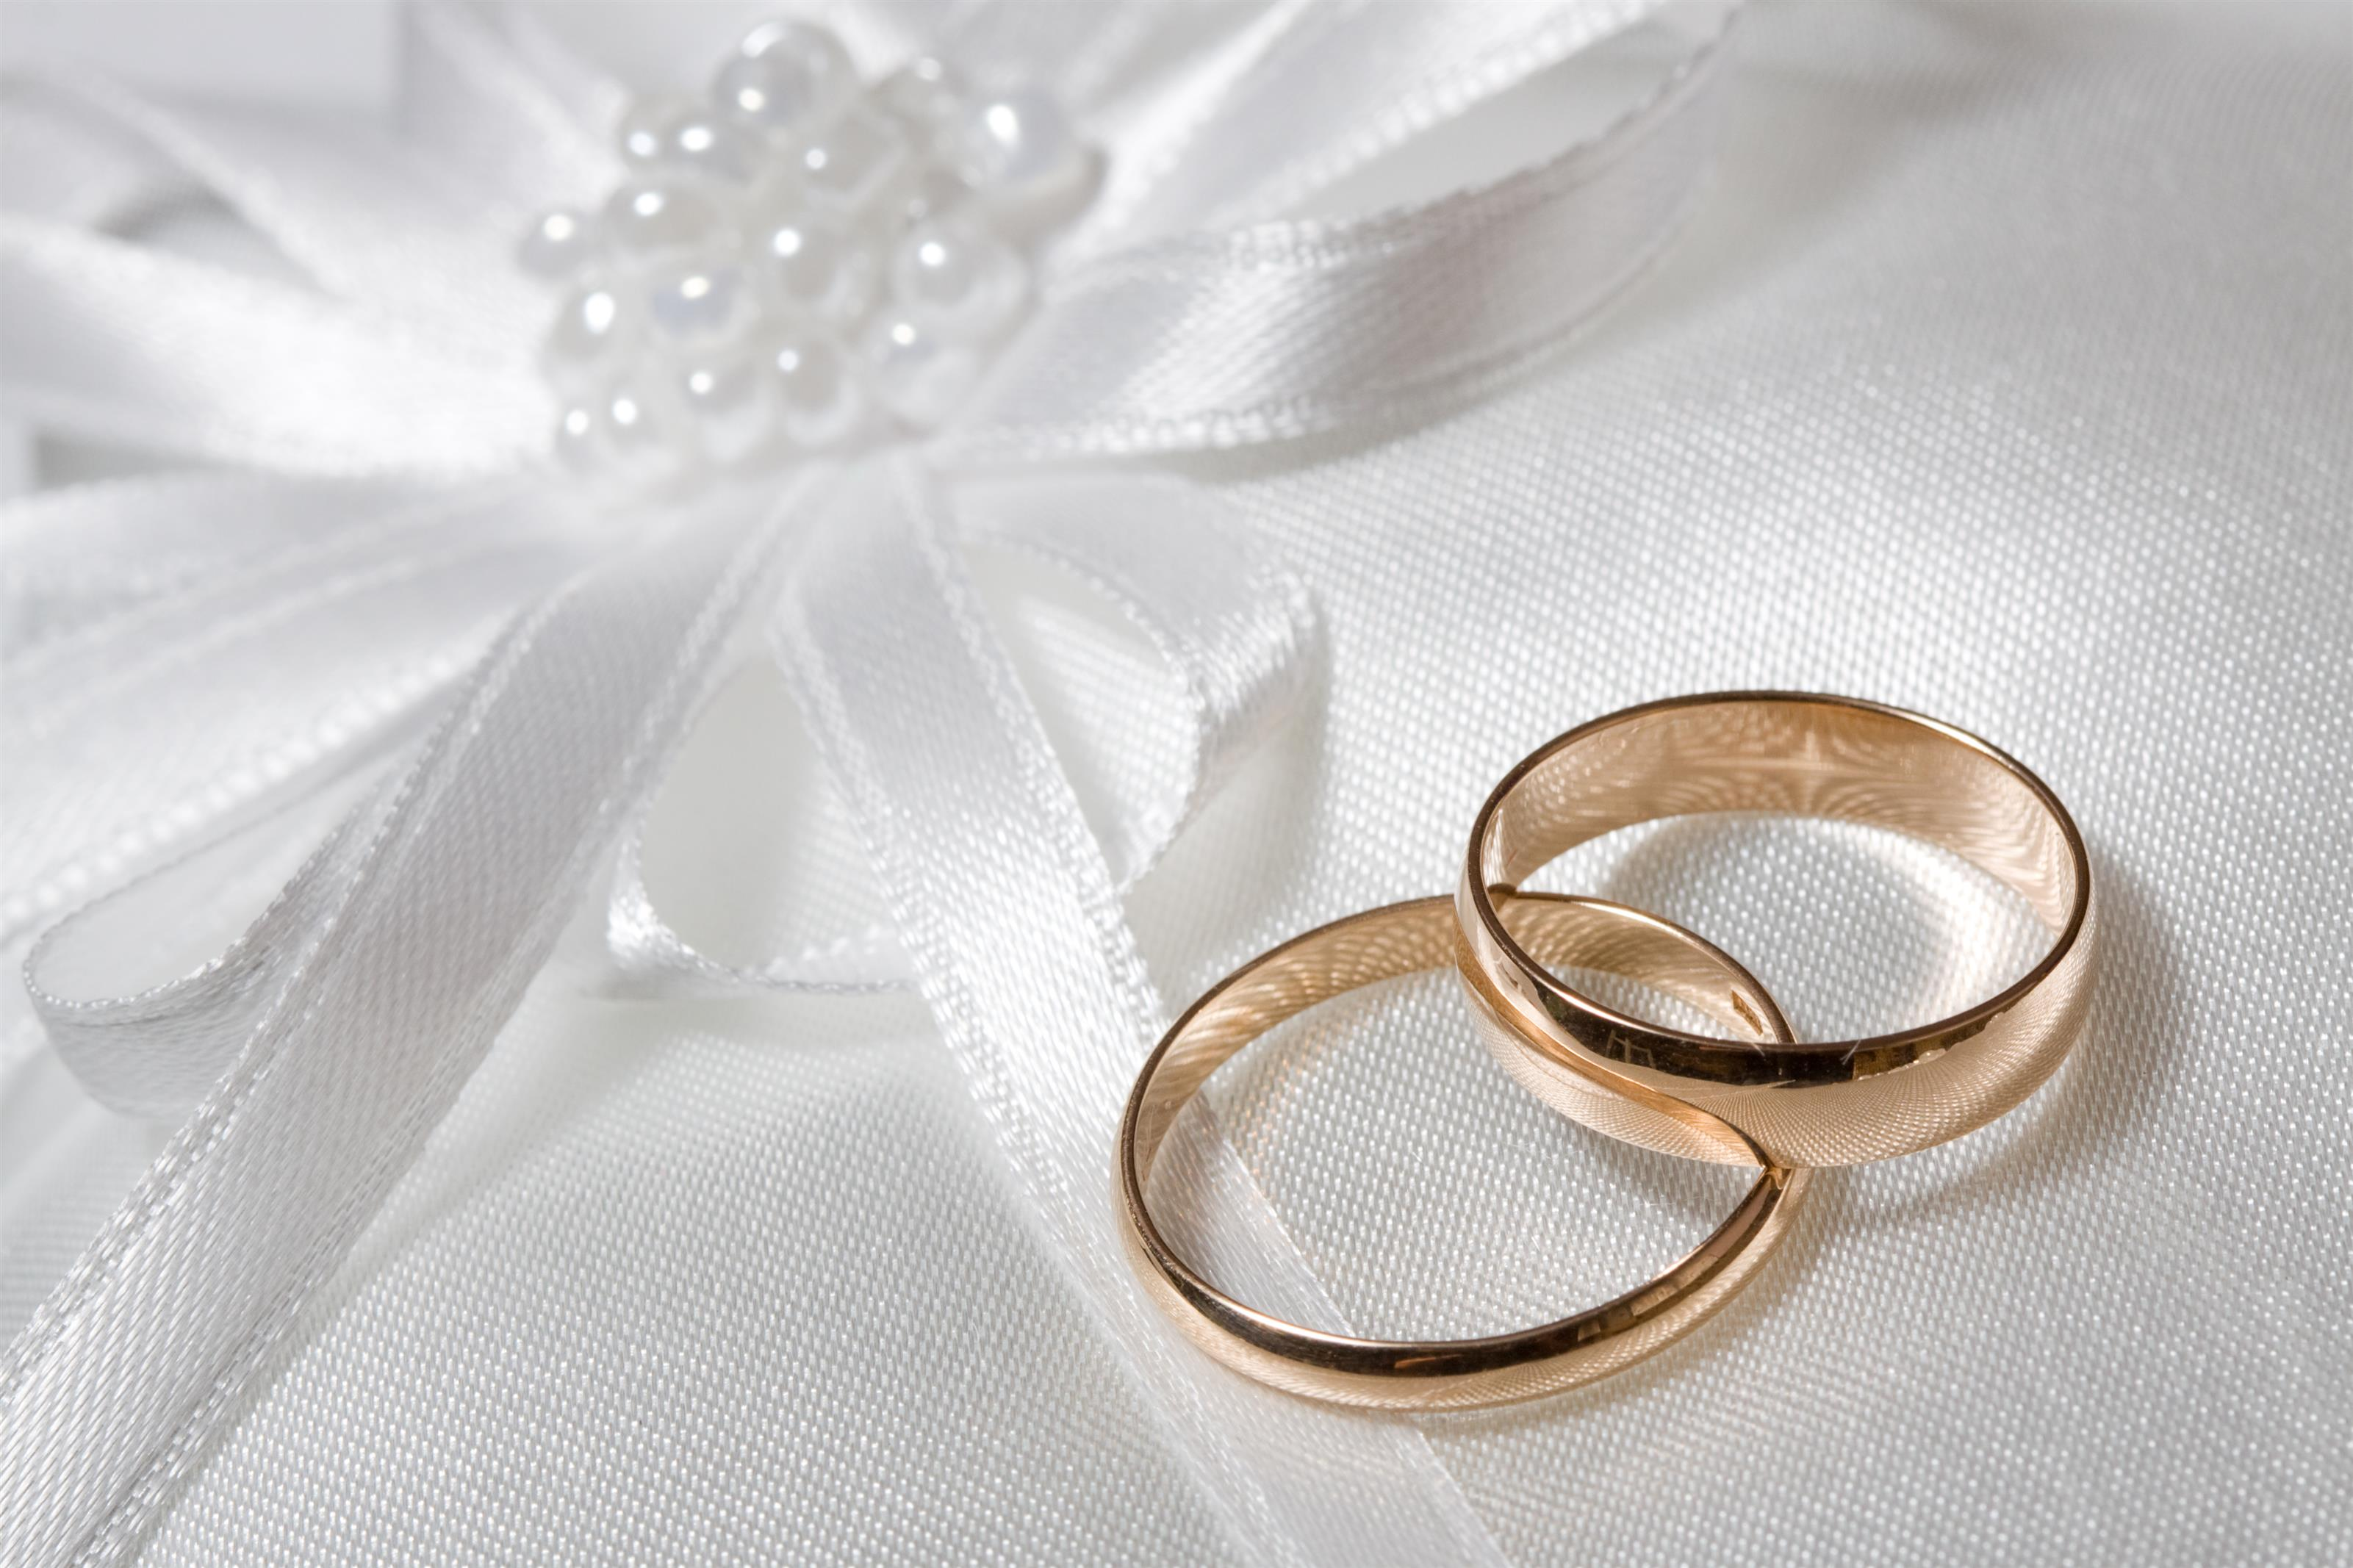 Gold wedding rings on elegant cloth